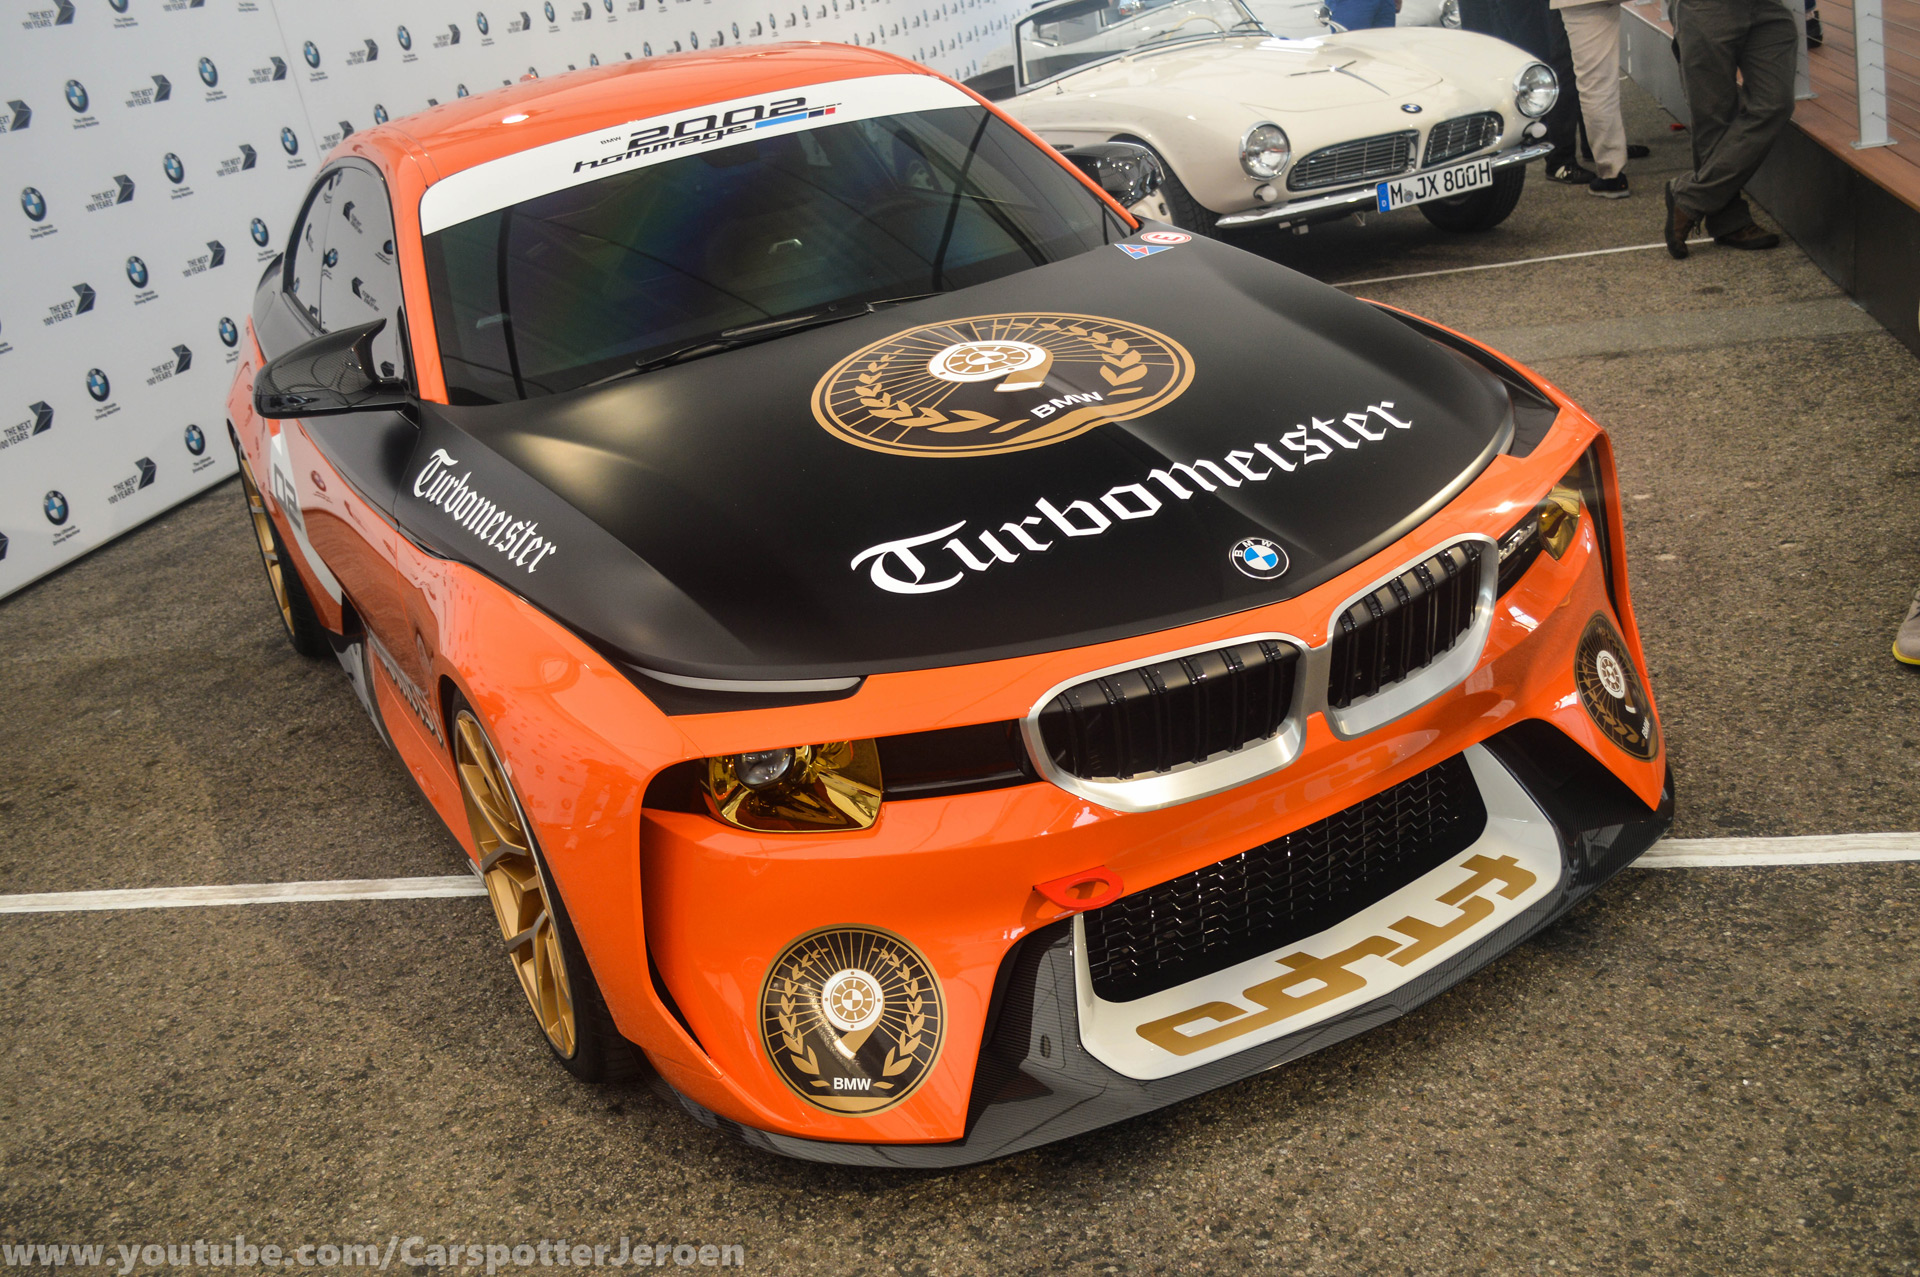 Bmw 2002 Homage Concept Gets Retro Livery For Monterey Car